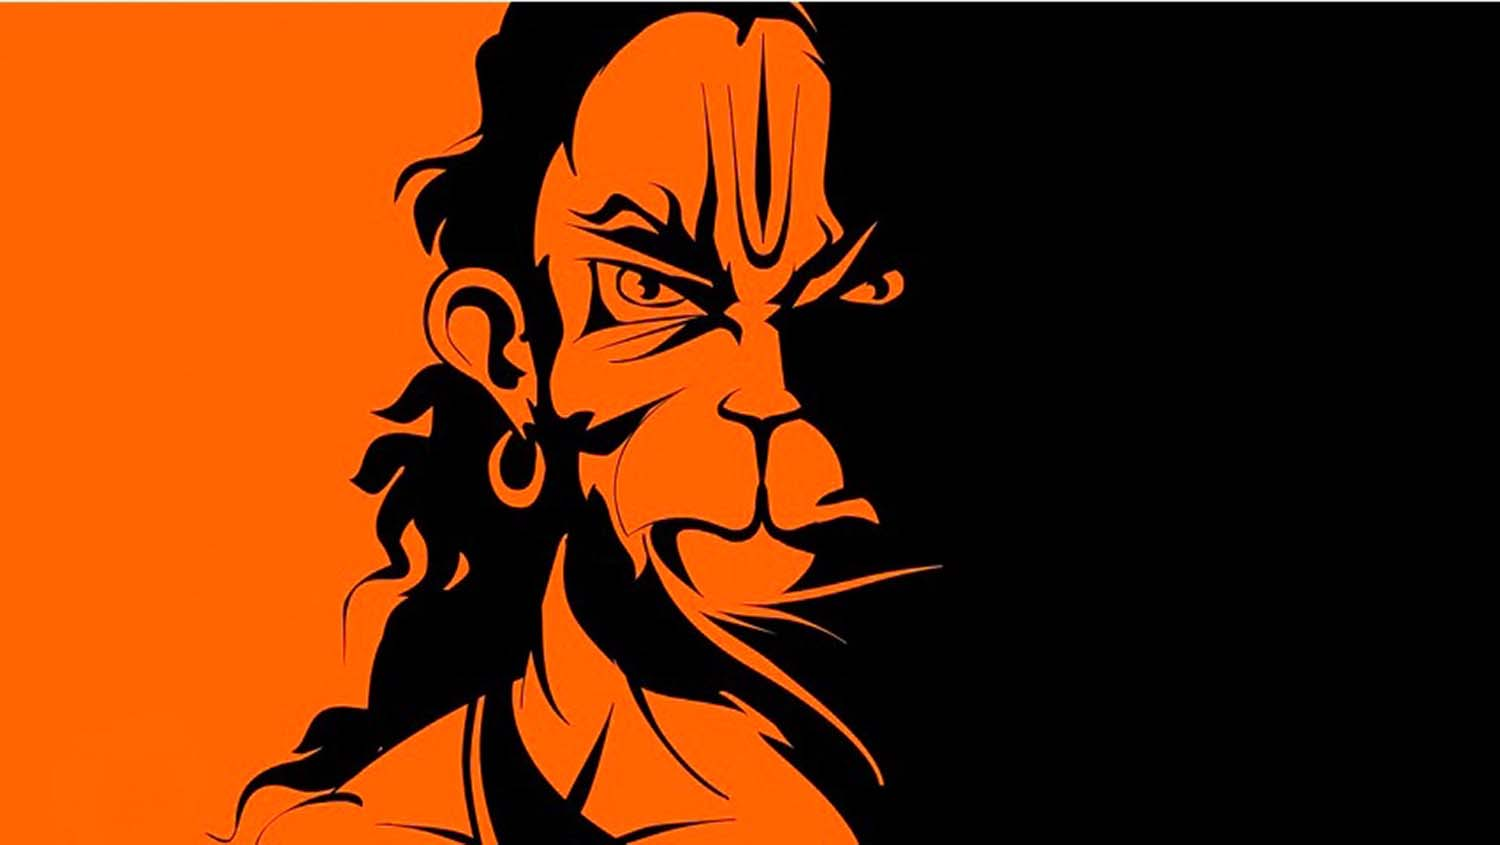 Bajrangbali Wallpaper 3d Angry Full Hd Hanuman 2071890 Hd Wallpaper Backgrounds Download